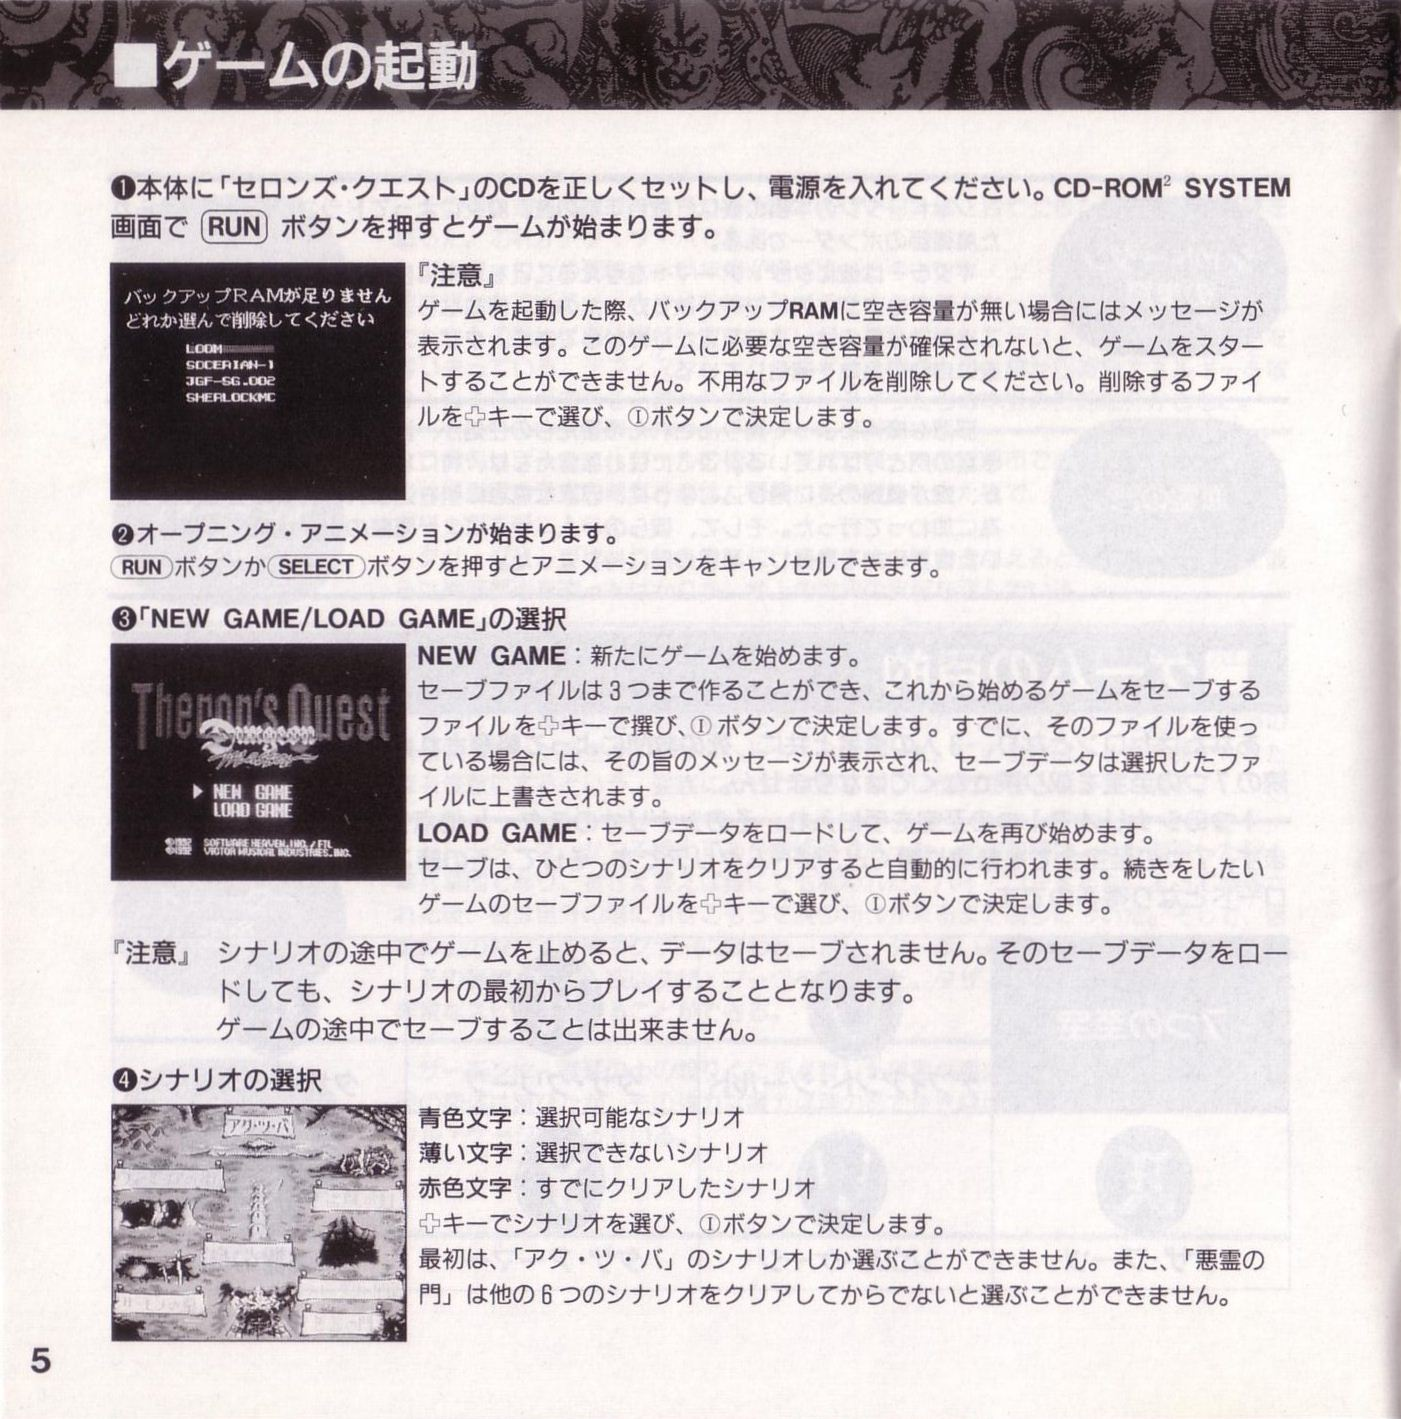 Game - Theron's Quest - JP - PC Engine - Booklet - Page 008 - Scan